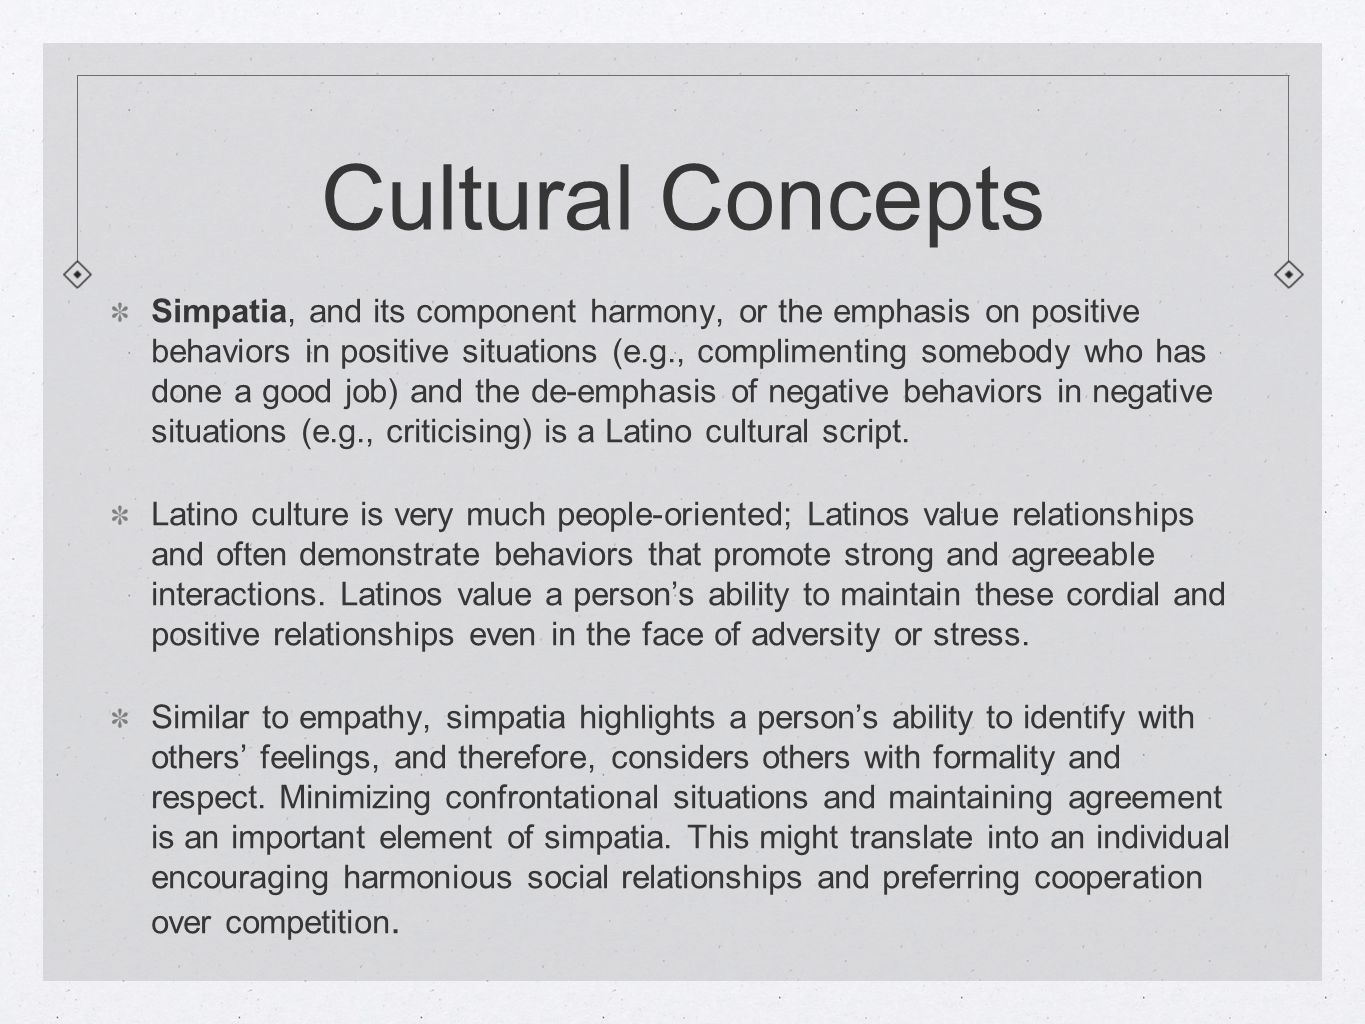 Cultural Concepts Simpatia, and its component harmony, or the emphasis on positive behaviors in positive situations (e.g., complimenting somebody who has done a good job) and the de-emphasis of negative behaviors in negative situations (e.g., criticising) is a Latino cultural script.